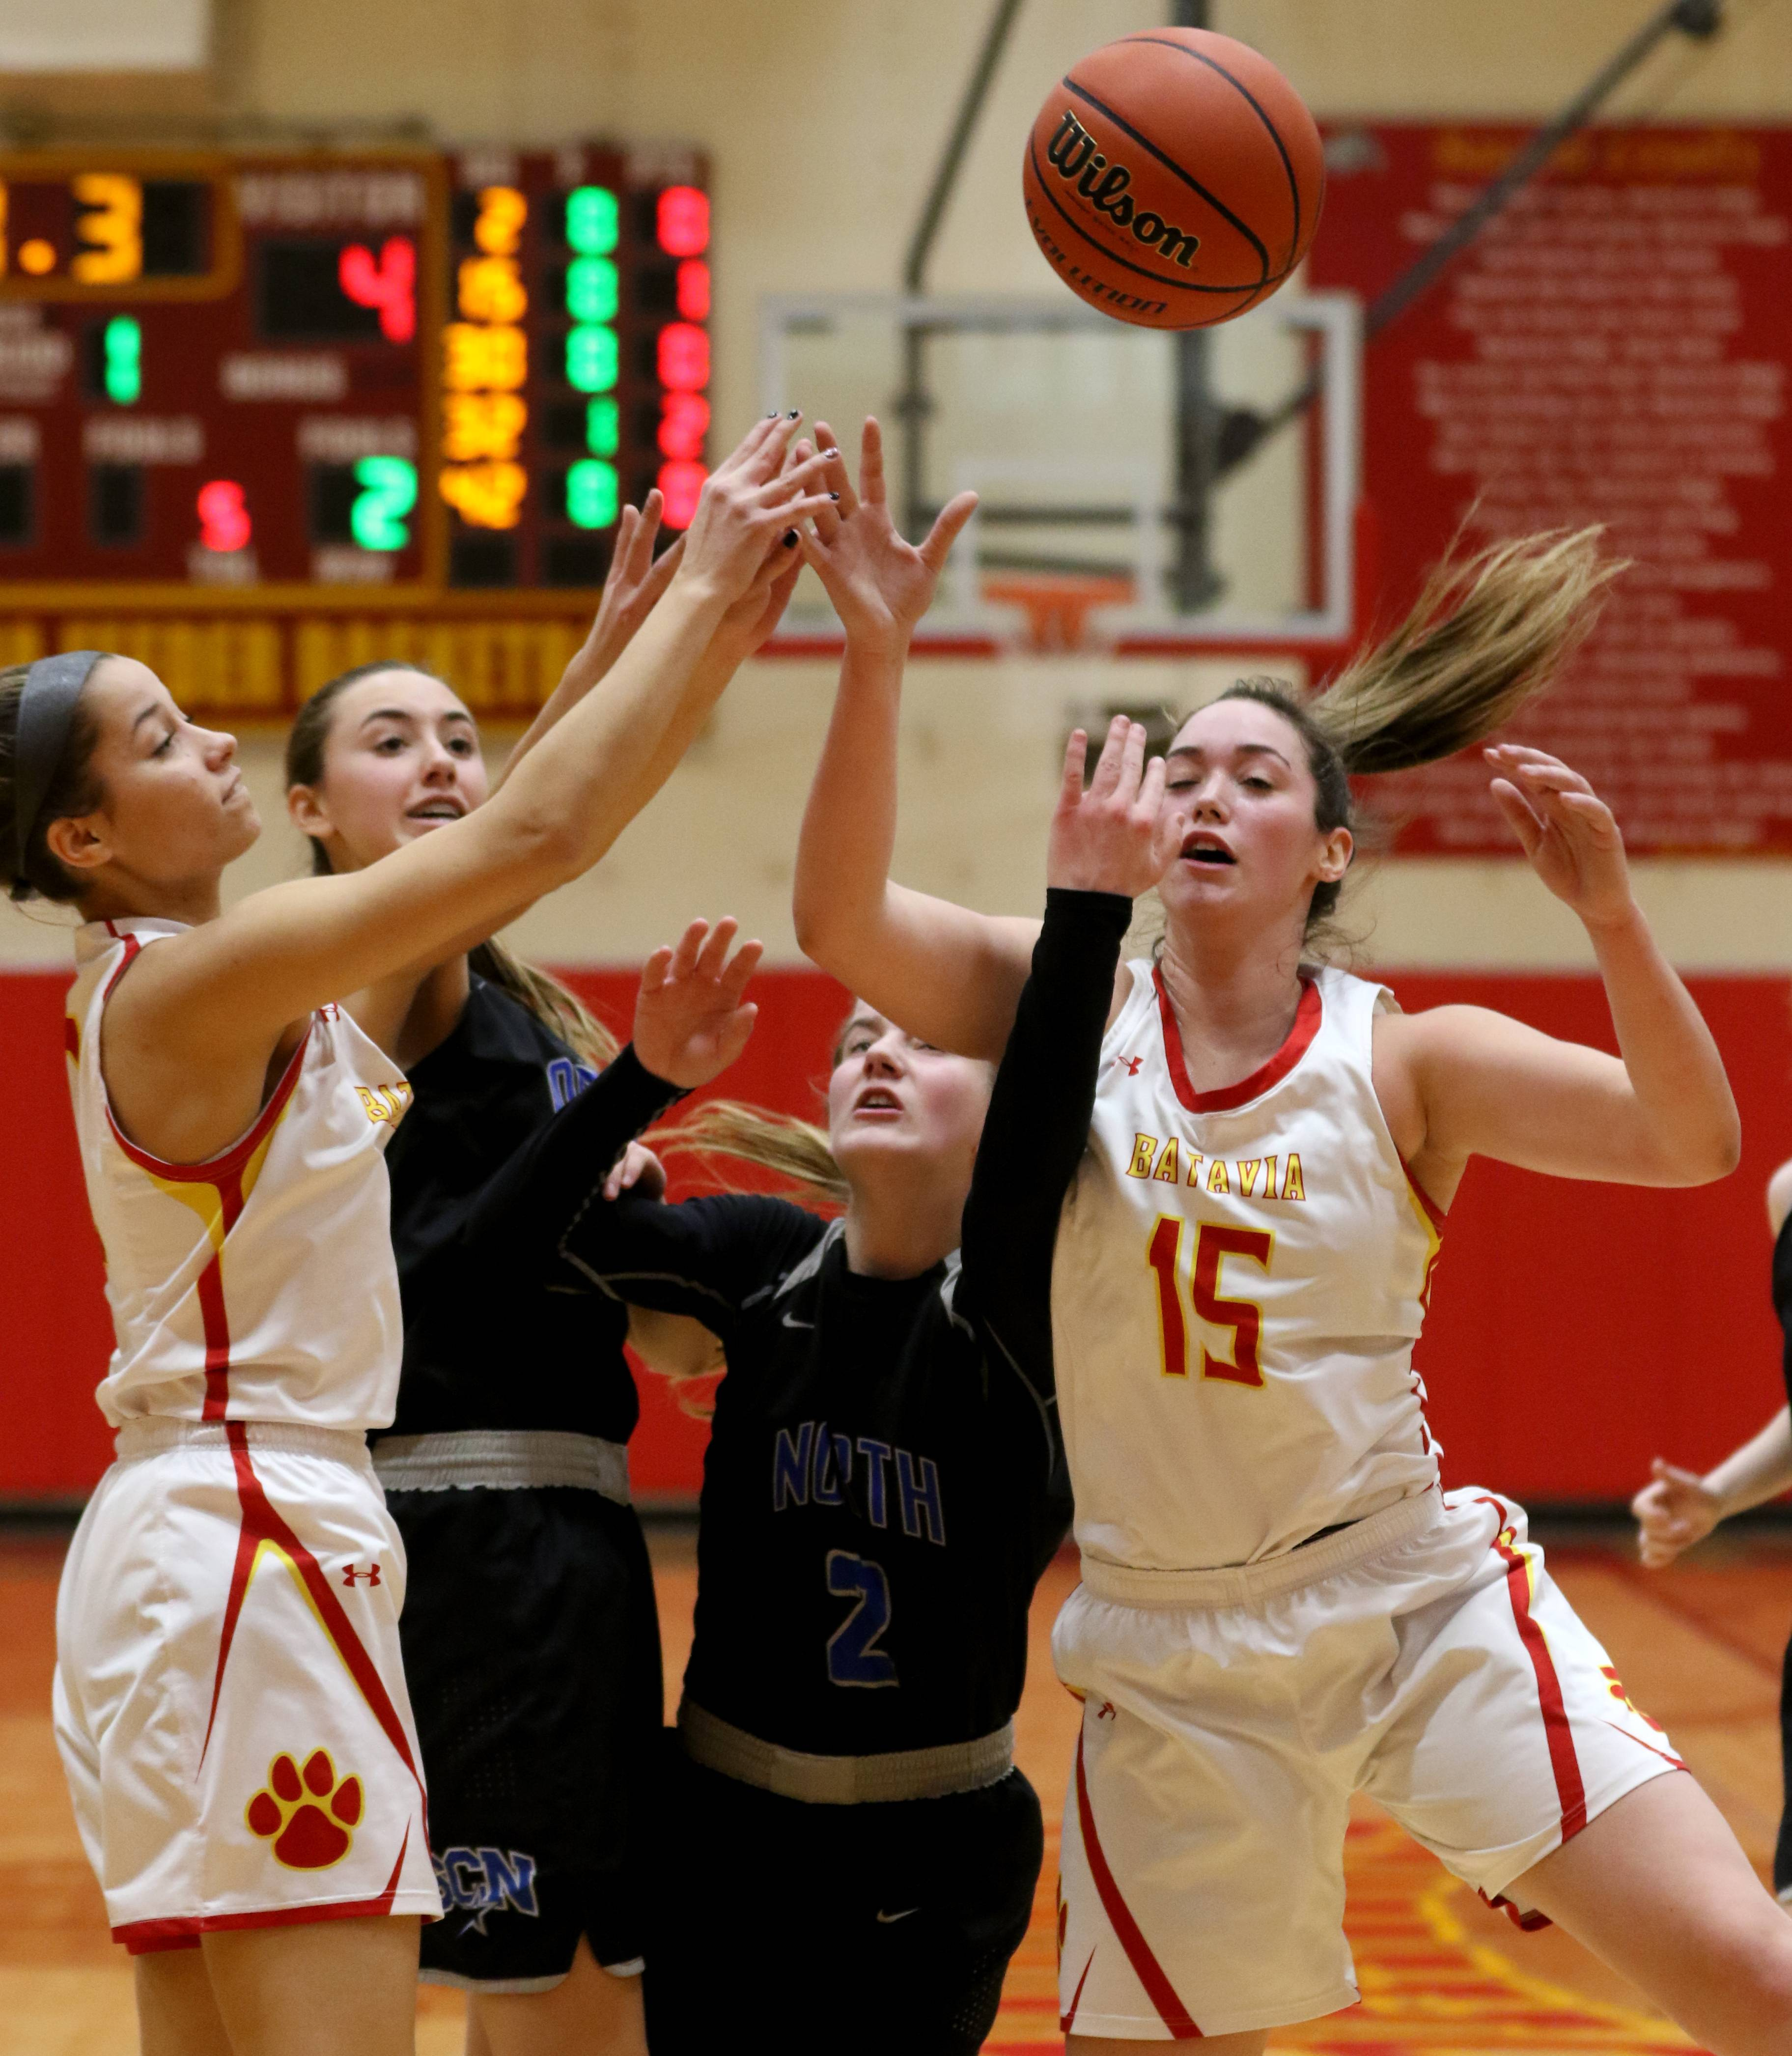 Batavia's Katherine Polick, left, and Ava Sergio, right, along with St. Charles North's Tatum Settelmyer and Emma Ludwig look for a rebound during varsity girls basketball at Batavia Thursday night.